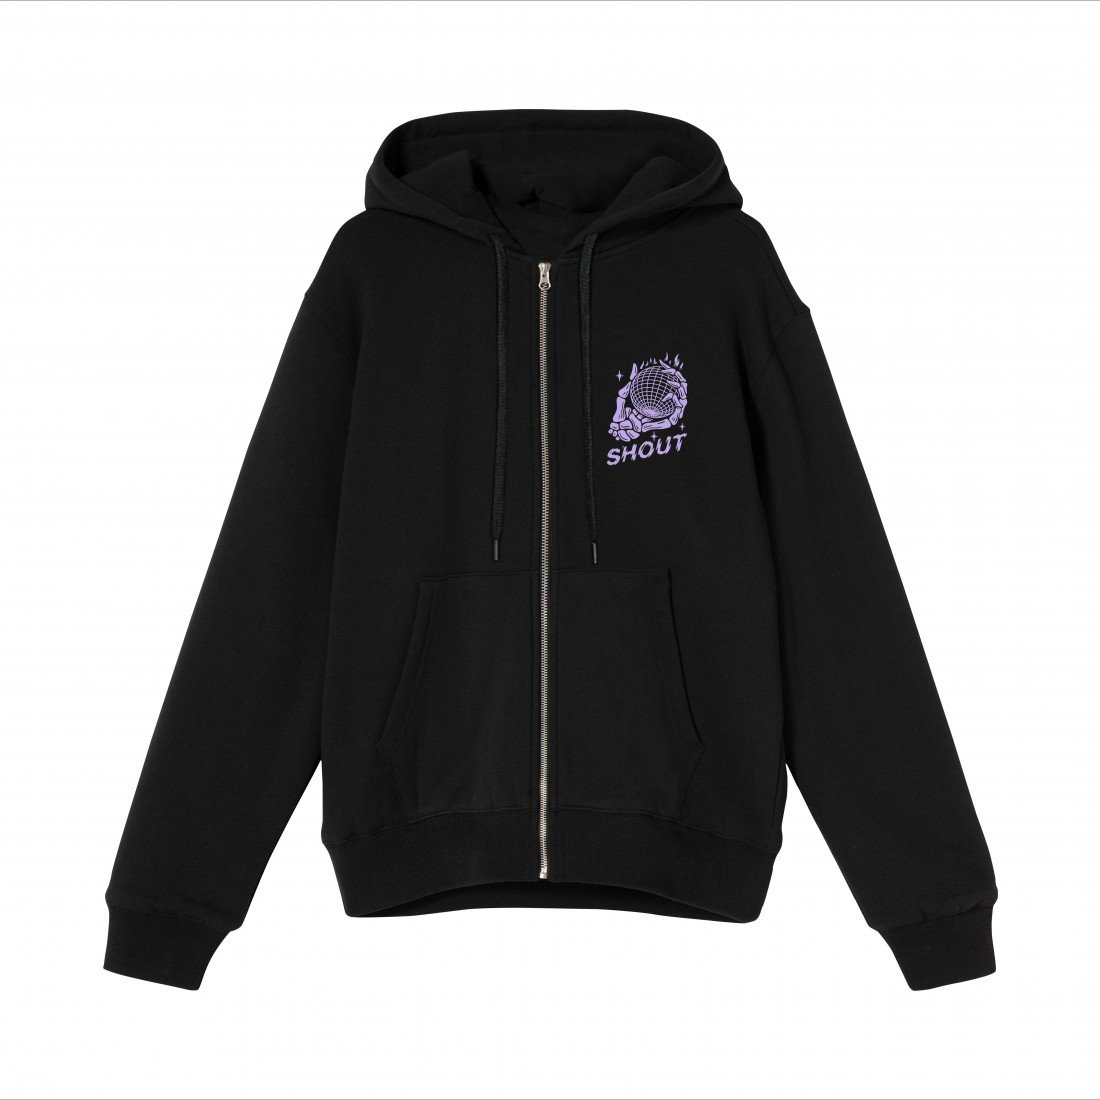 Shout Oversize Beyond The Epic Universe Unisex Zip Up Hoodie